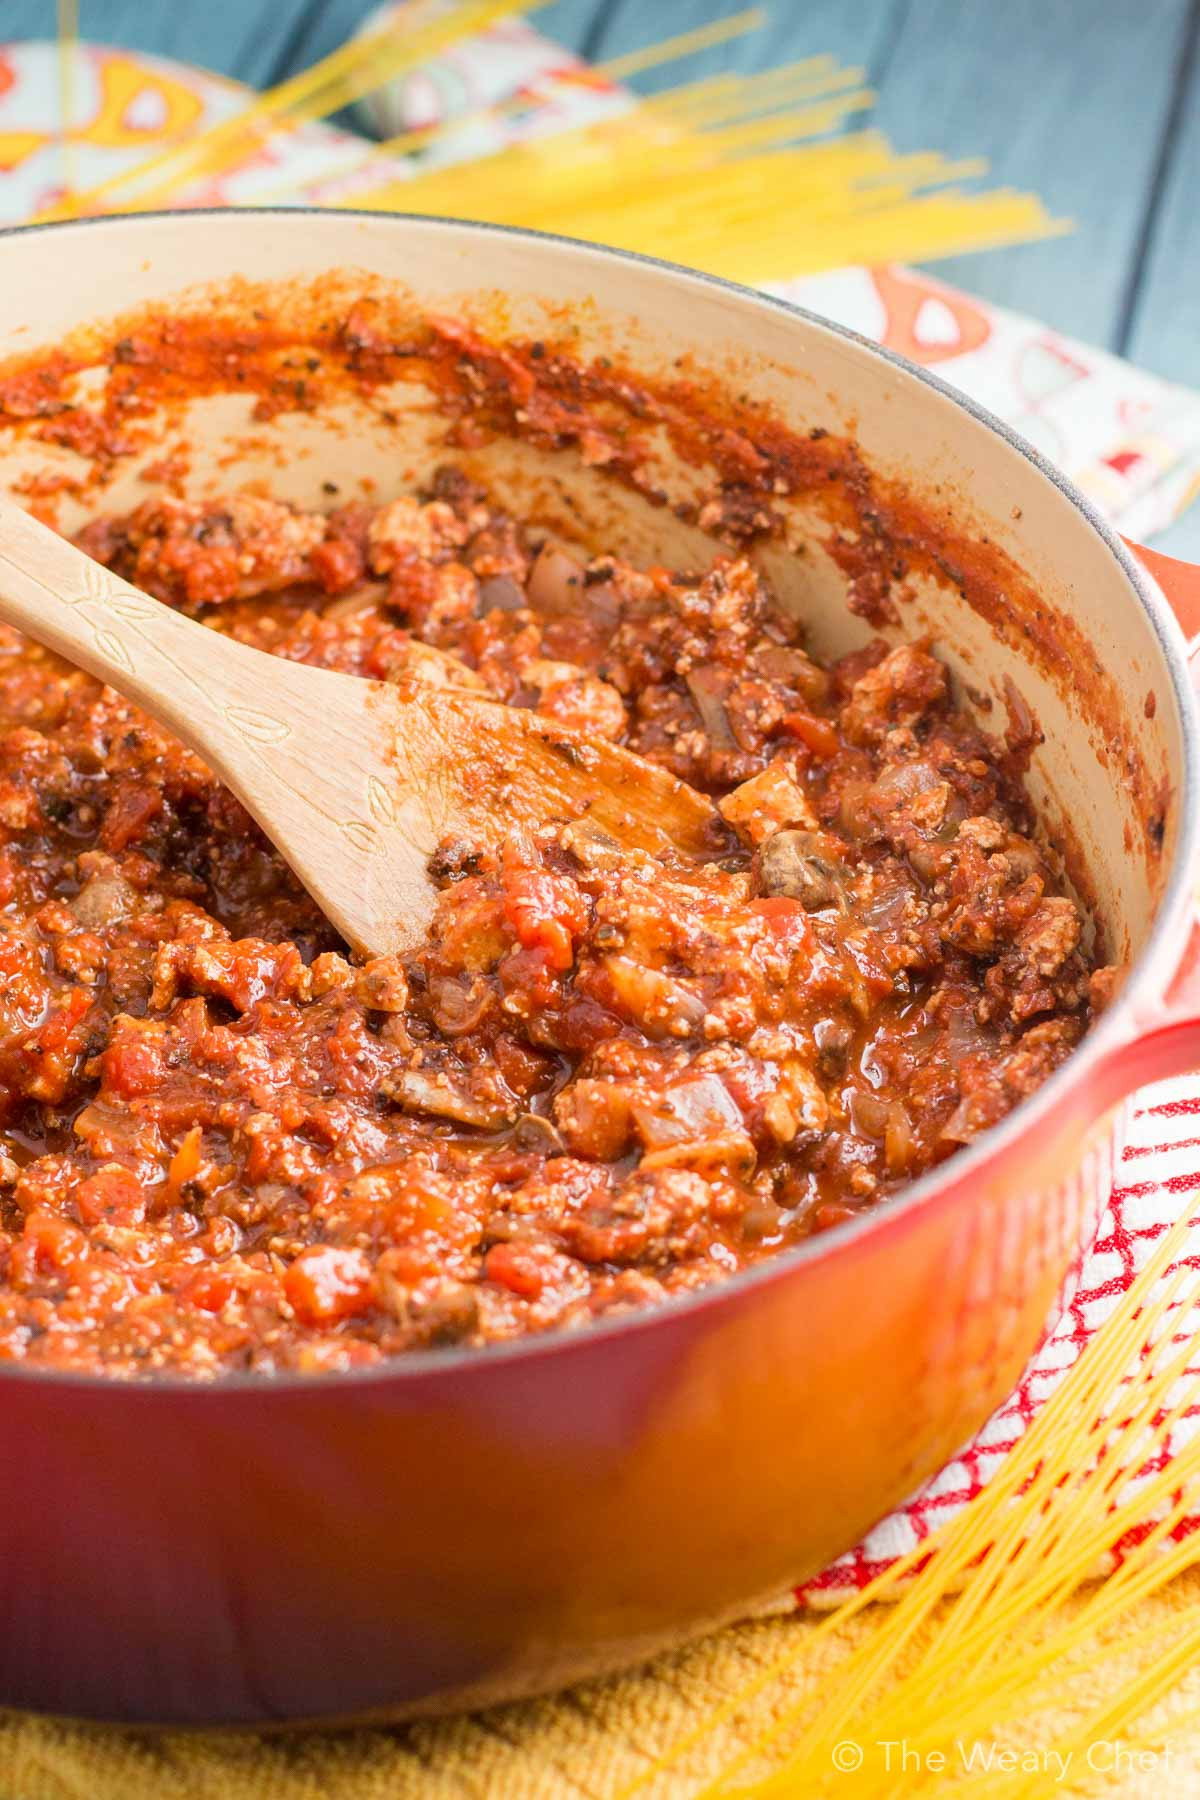 Vegetarian Sauces Recipes  Hearty Ve arian Spaghetti Sauce with Tofu and Mushrooms